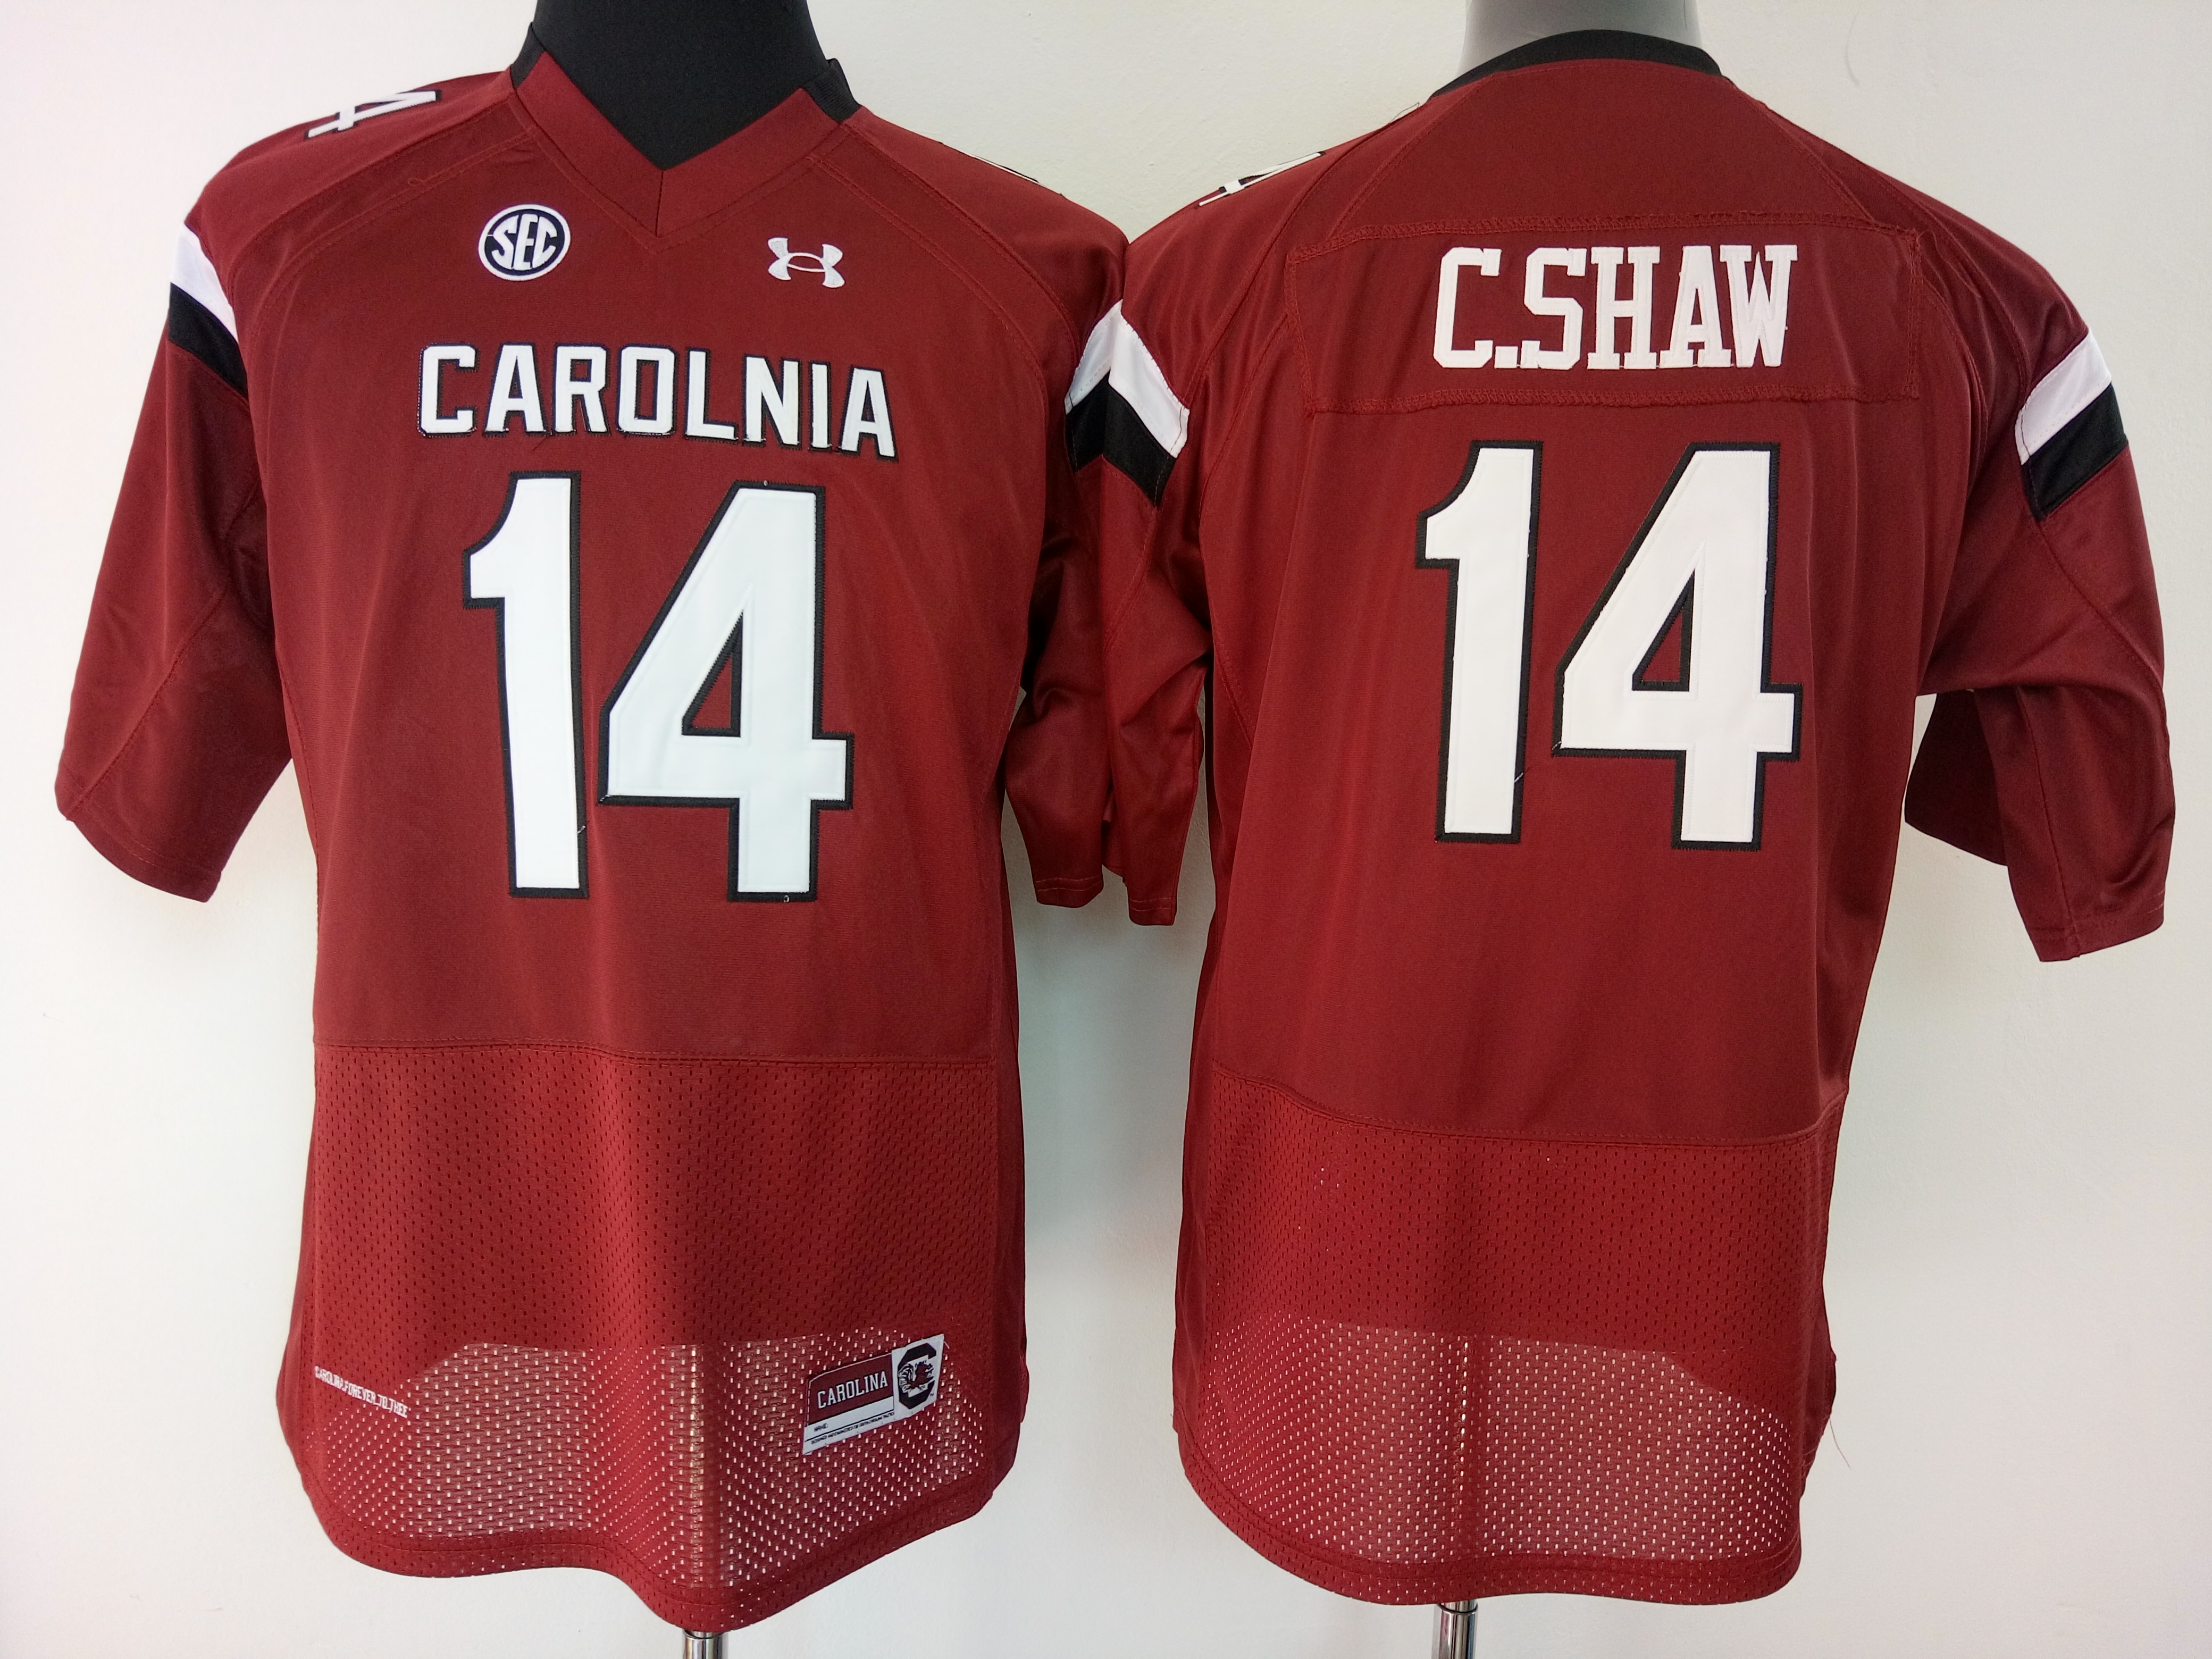 NCAA Womens South Carolina Gamecock Red 14 C shaw jerseys